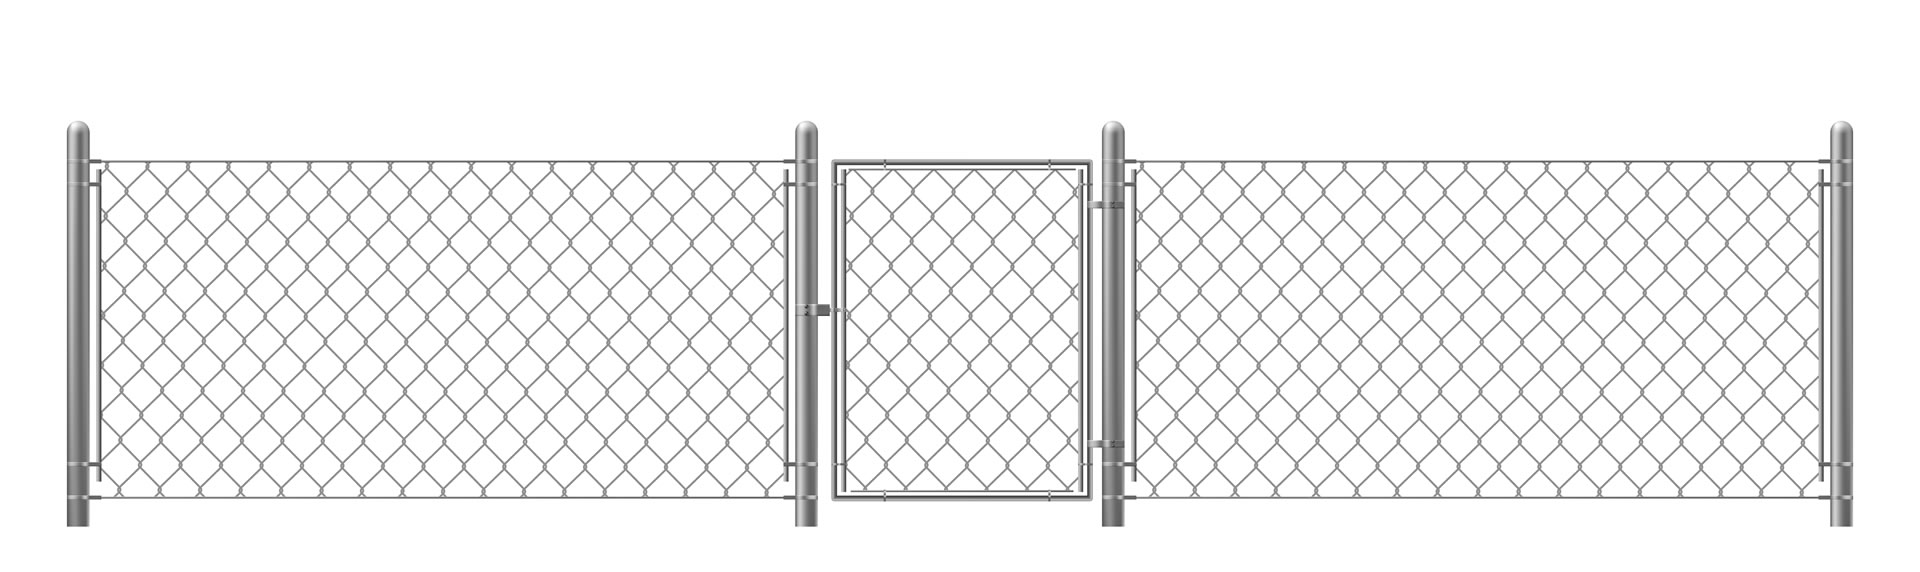 Metal Wicket Gate Fence